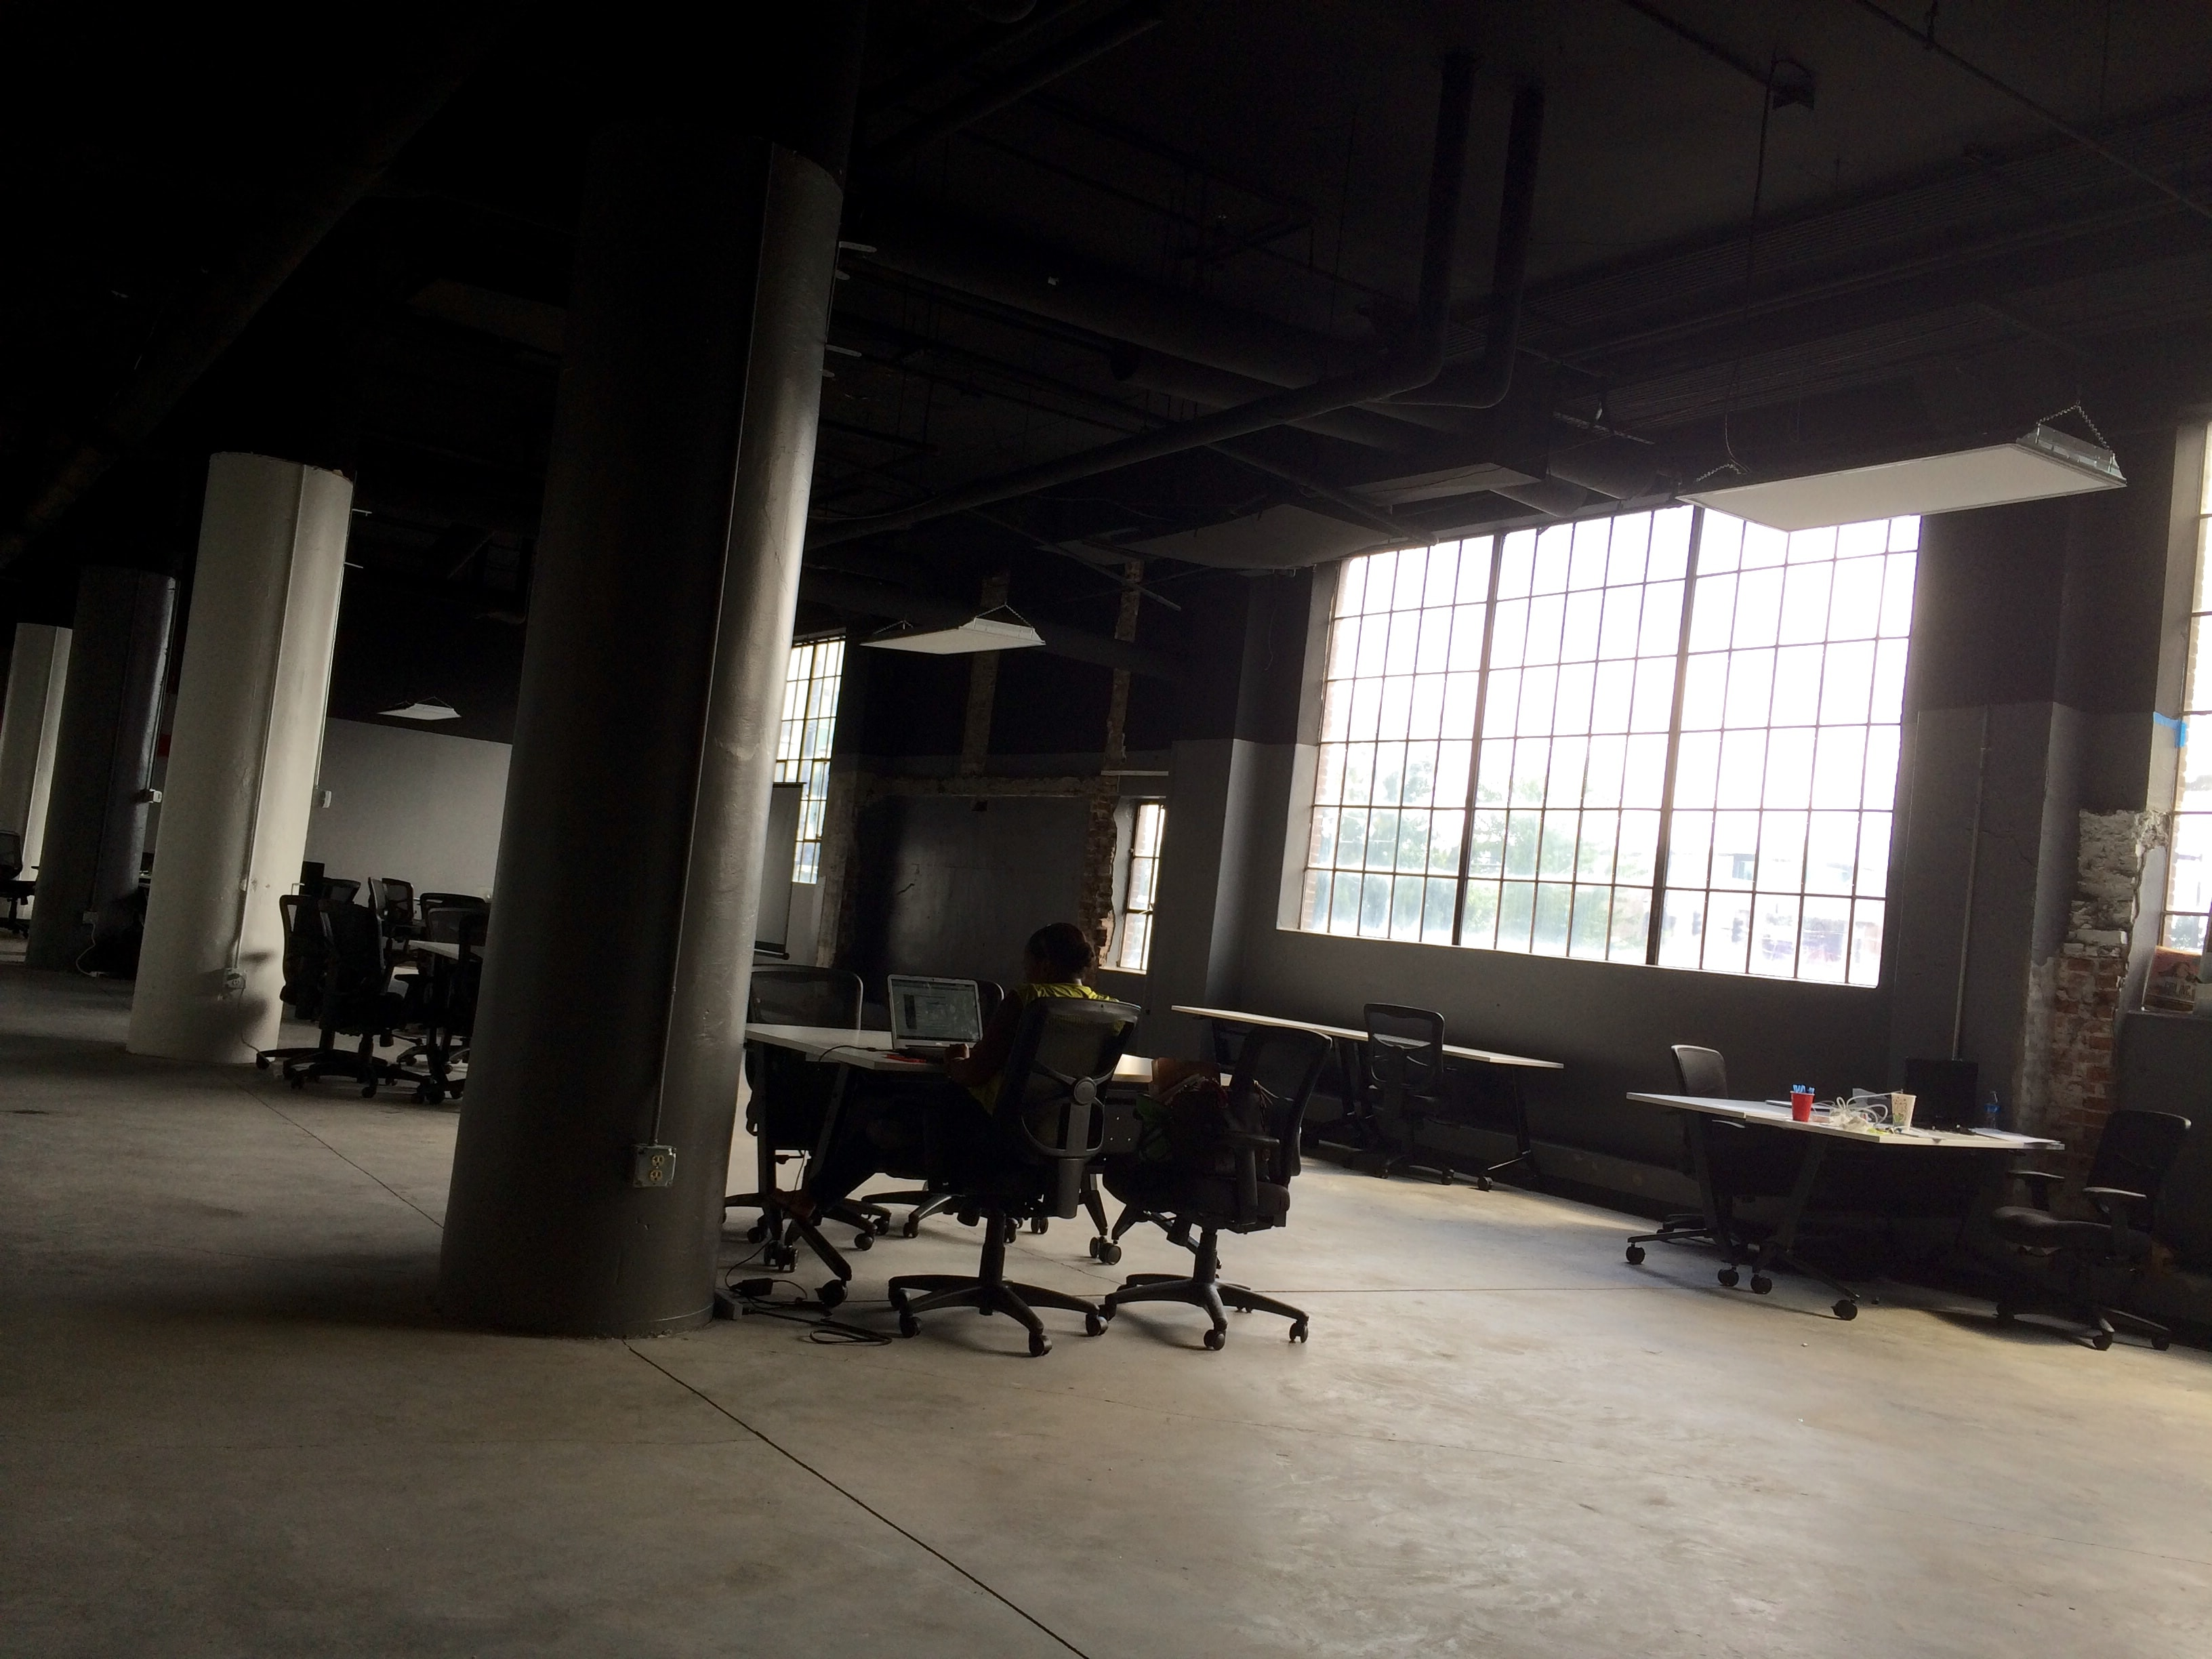 A lone employee working in a large loft office